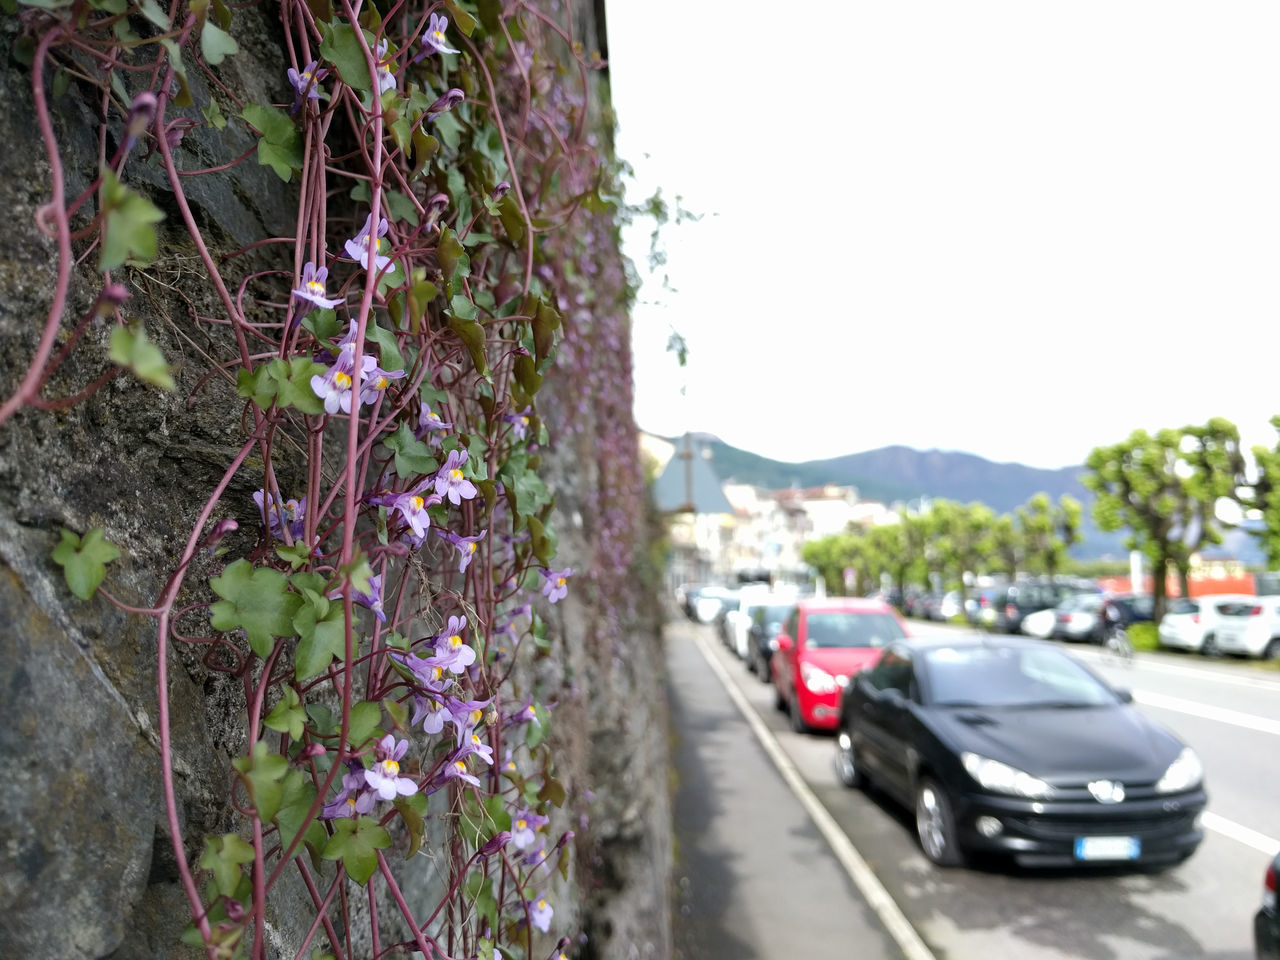 Beauty In Nature Blue Clear Sky Day Diminishing Perspective Flower Focus On Foreground Growth Land Vehicle Landscape Mode Of Transport Mountain Nature No People Outdoors Parked Parking Plant Road Sky Stationary The Way Forward